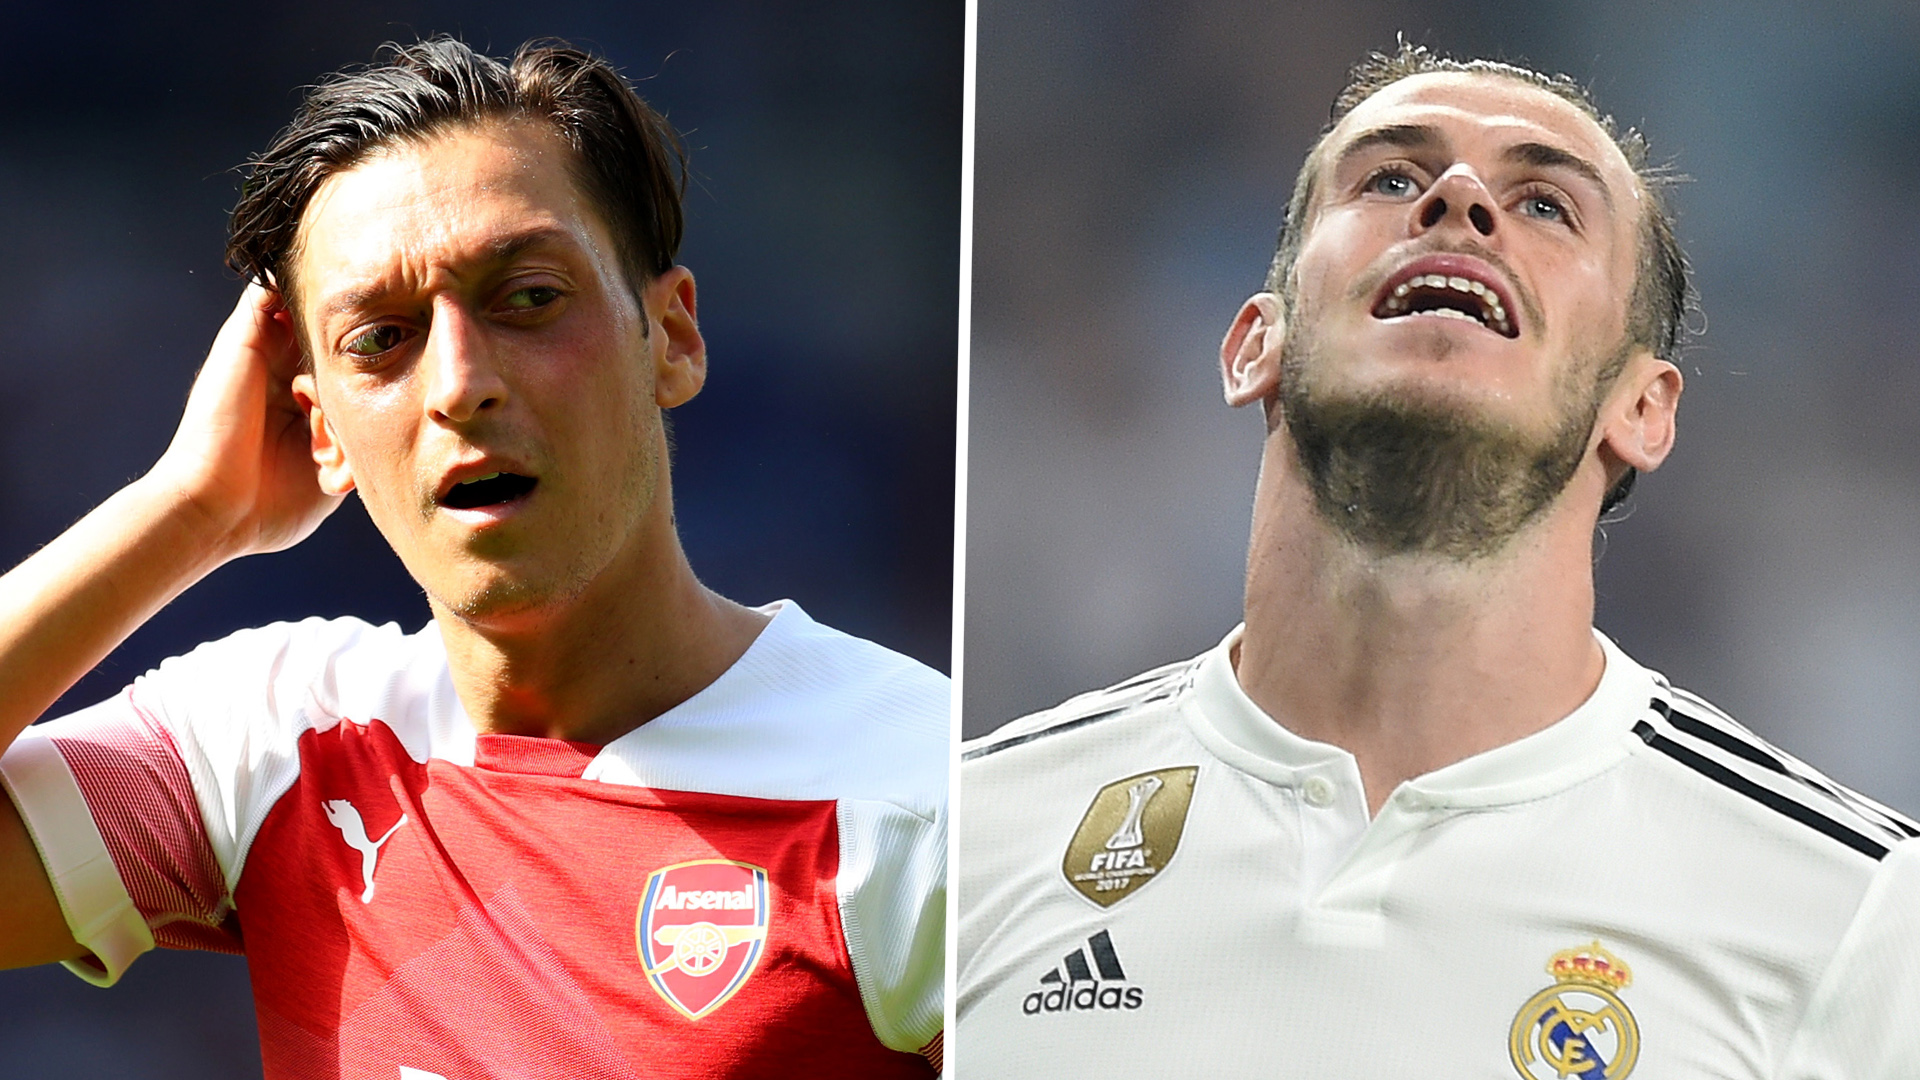 David De Gea Virgil van Dijk among contenders in FIFPro World XI